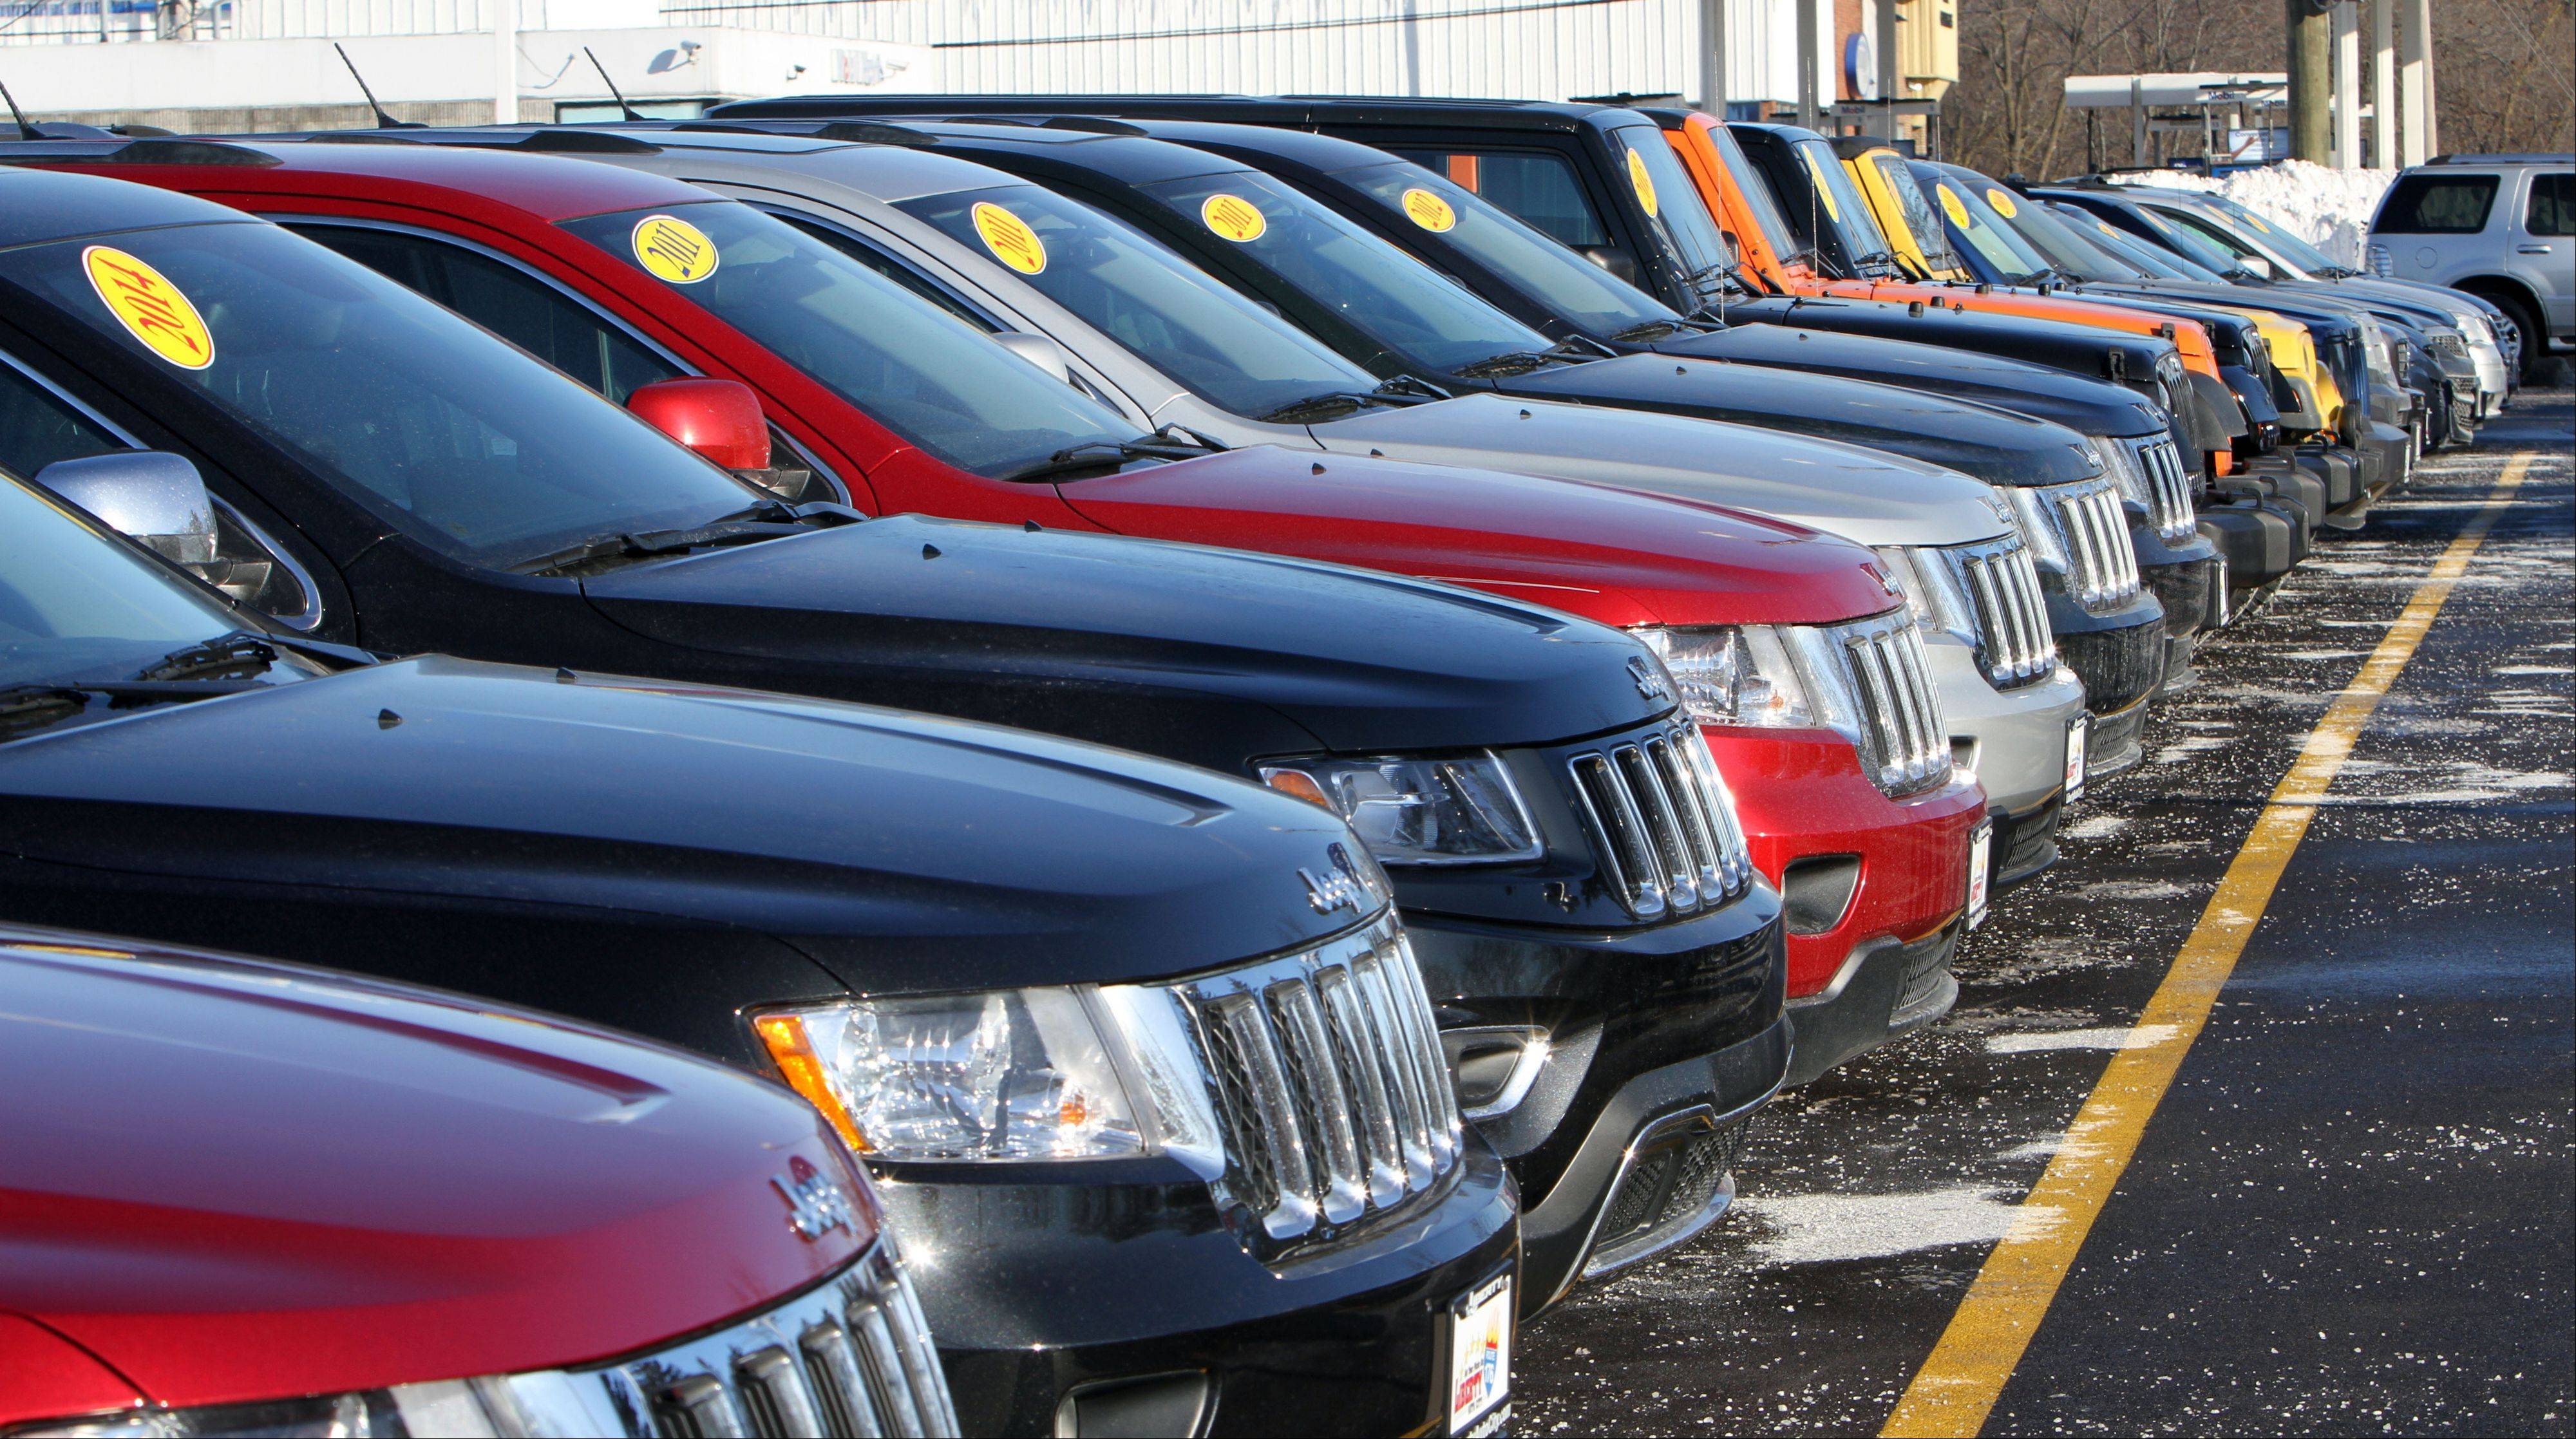 In addition to new cars and trucks, Liberty Auto City sells pre-owned vehicles in Libertyville.